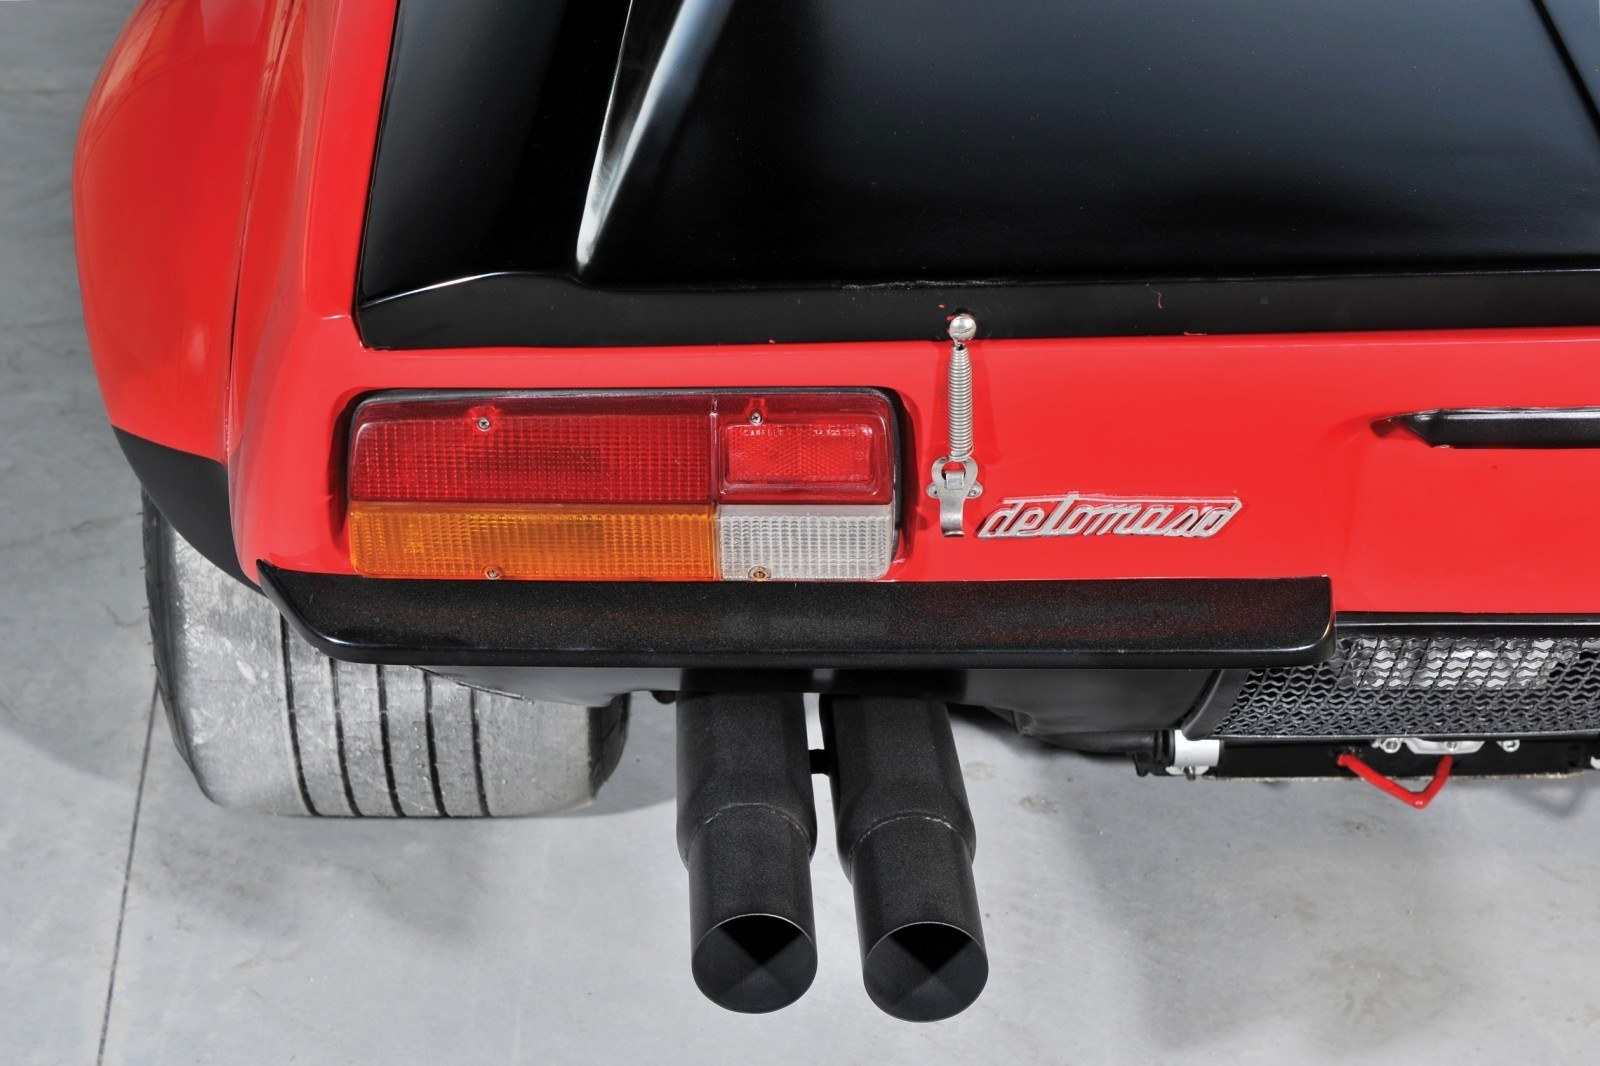 RM Auctions Monaco 2014 Highlights - 1973 DeTomaso Pantera Rally Special Is Low-Brow Heaven 7